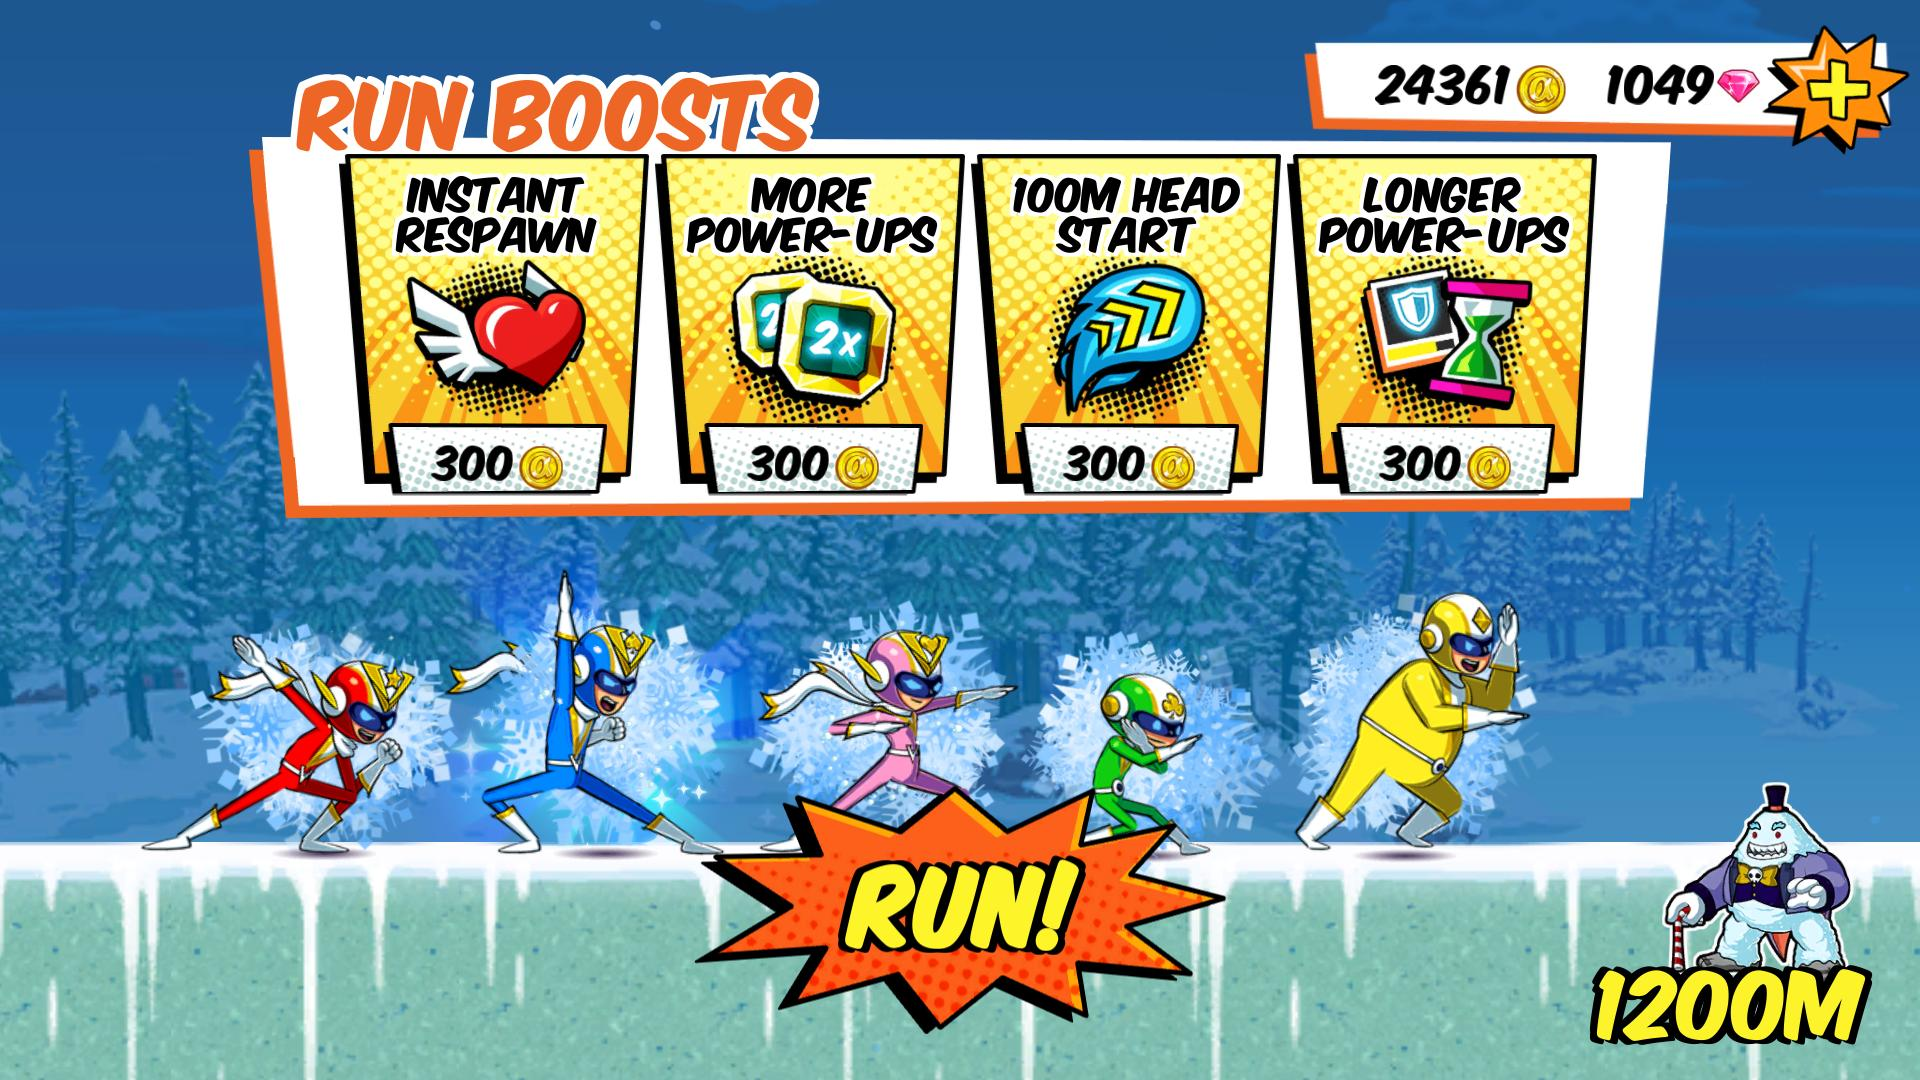 New update: The Super V team is now complete! - Altitude Games